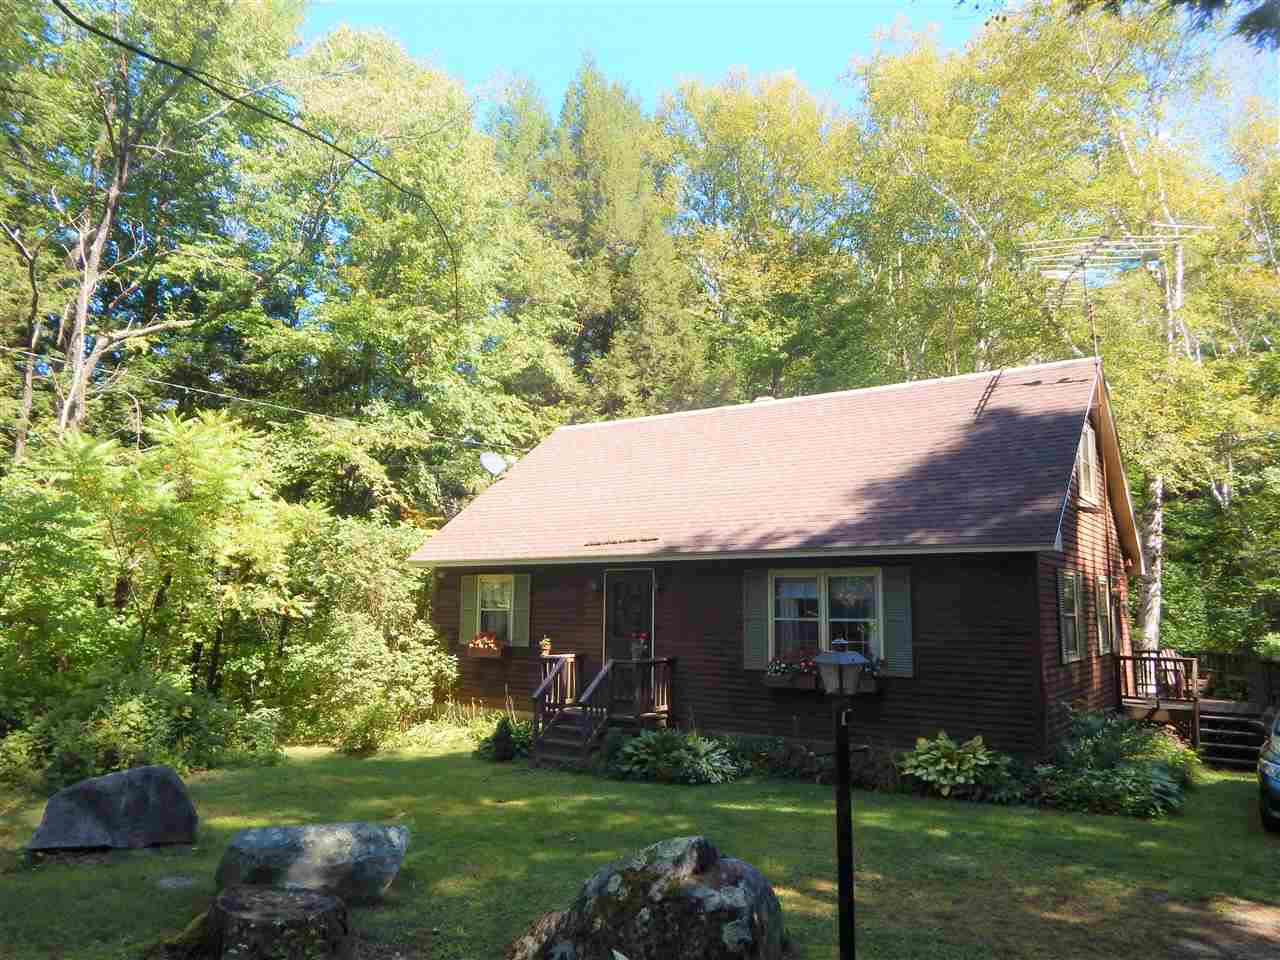 WINDSOR VT Homes for sale